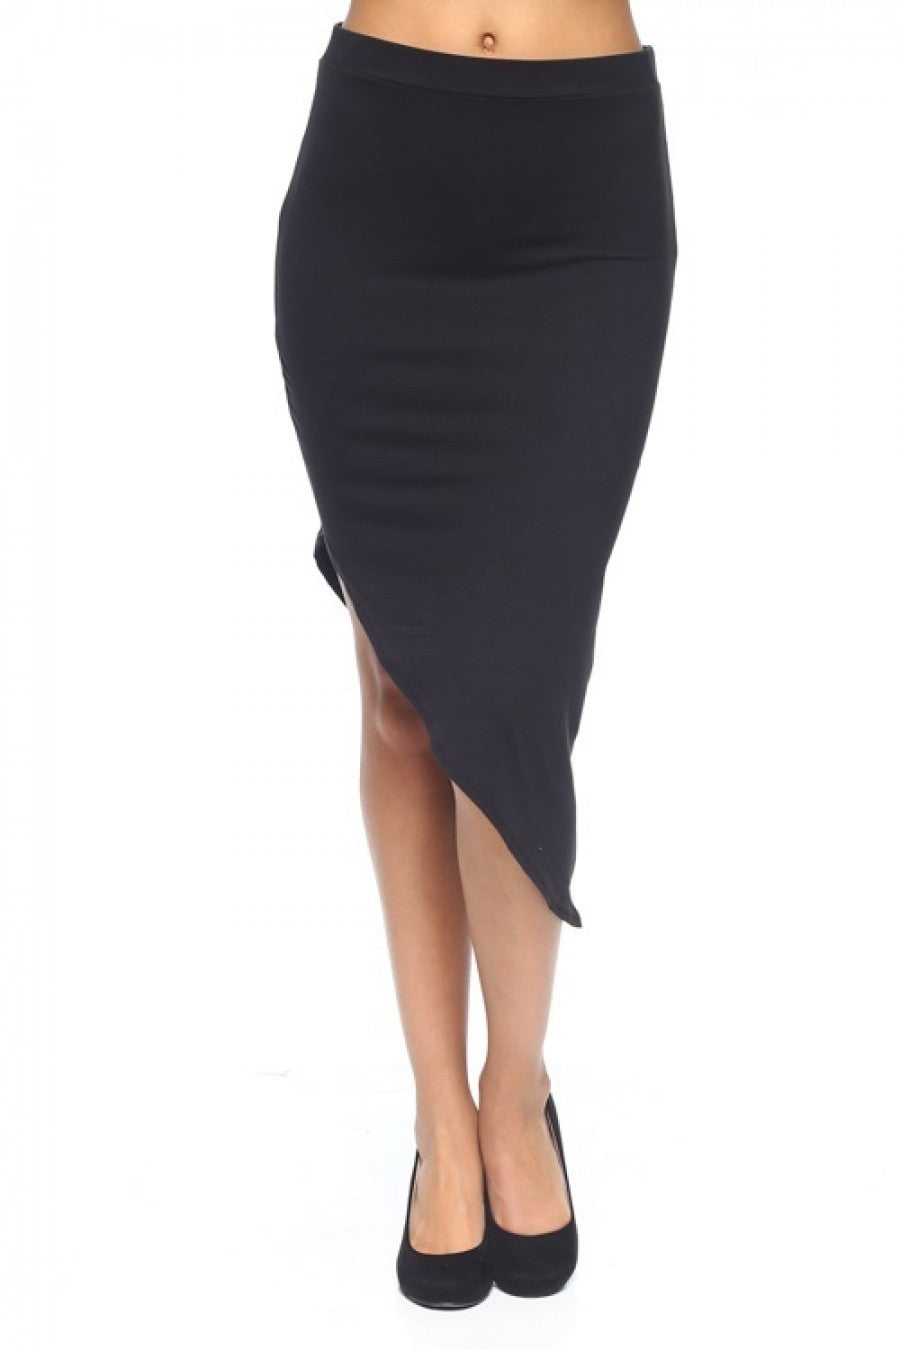 Solid Assymetric Bodycon Skirt - Lookeble